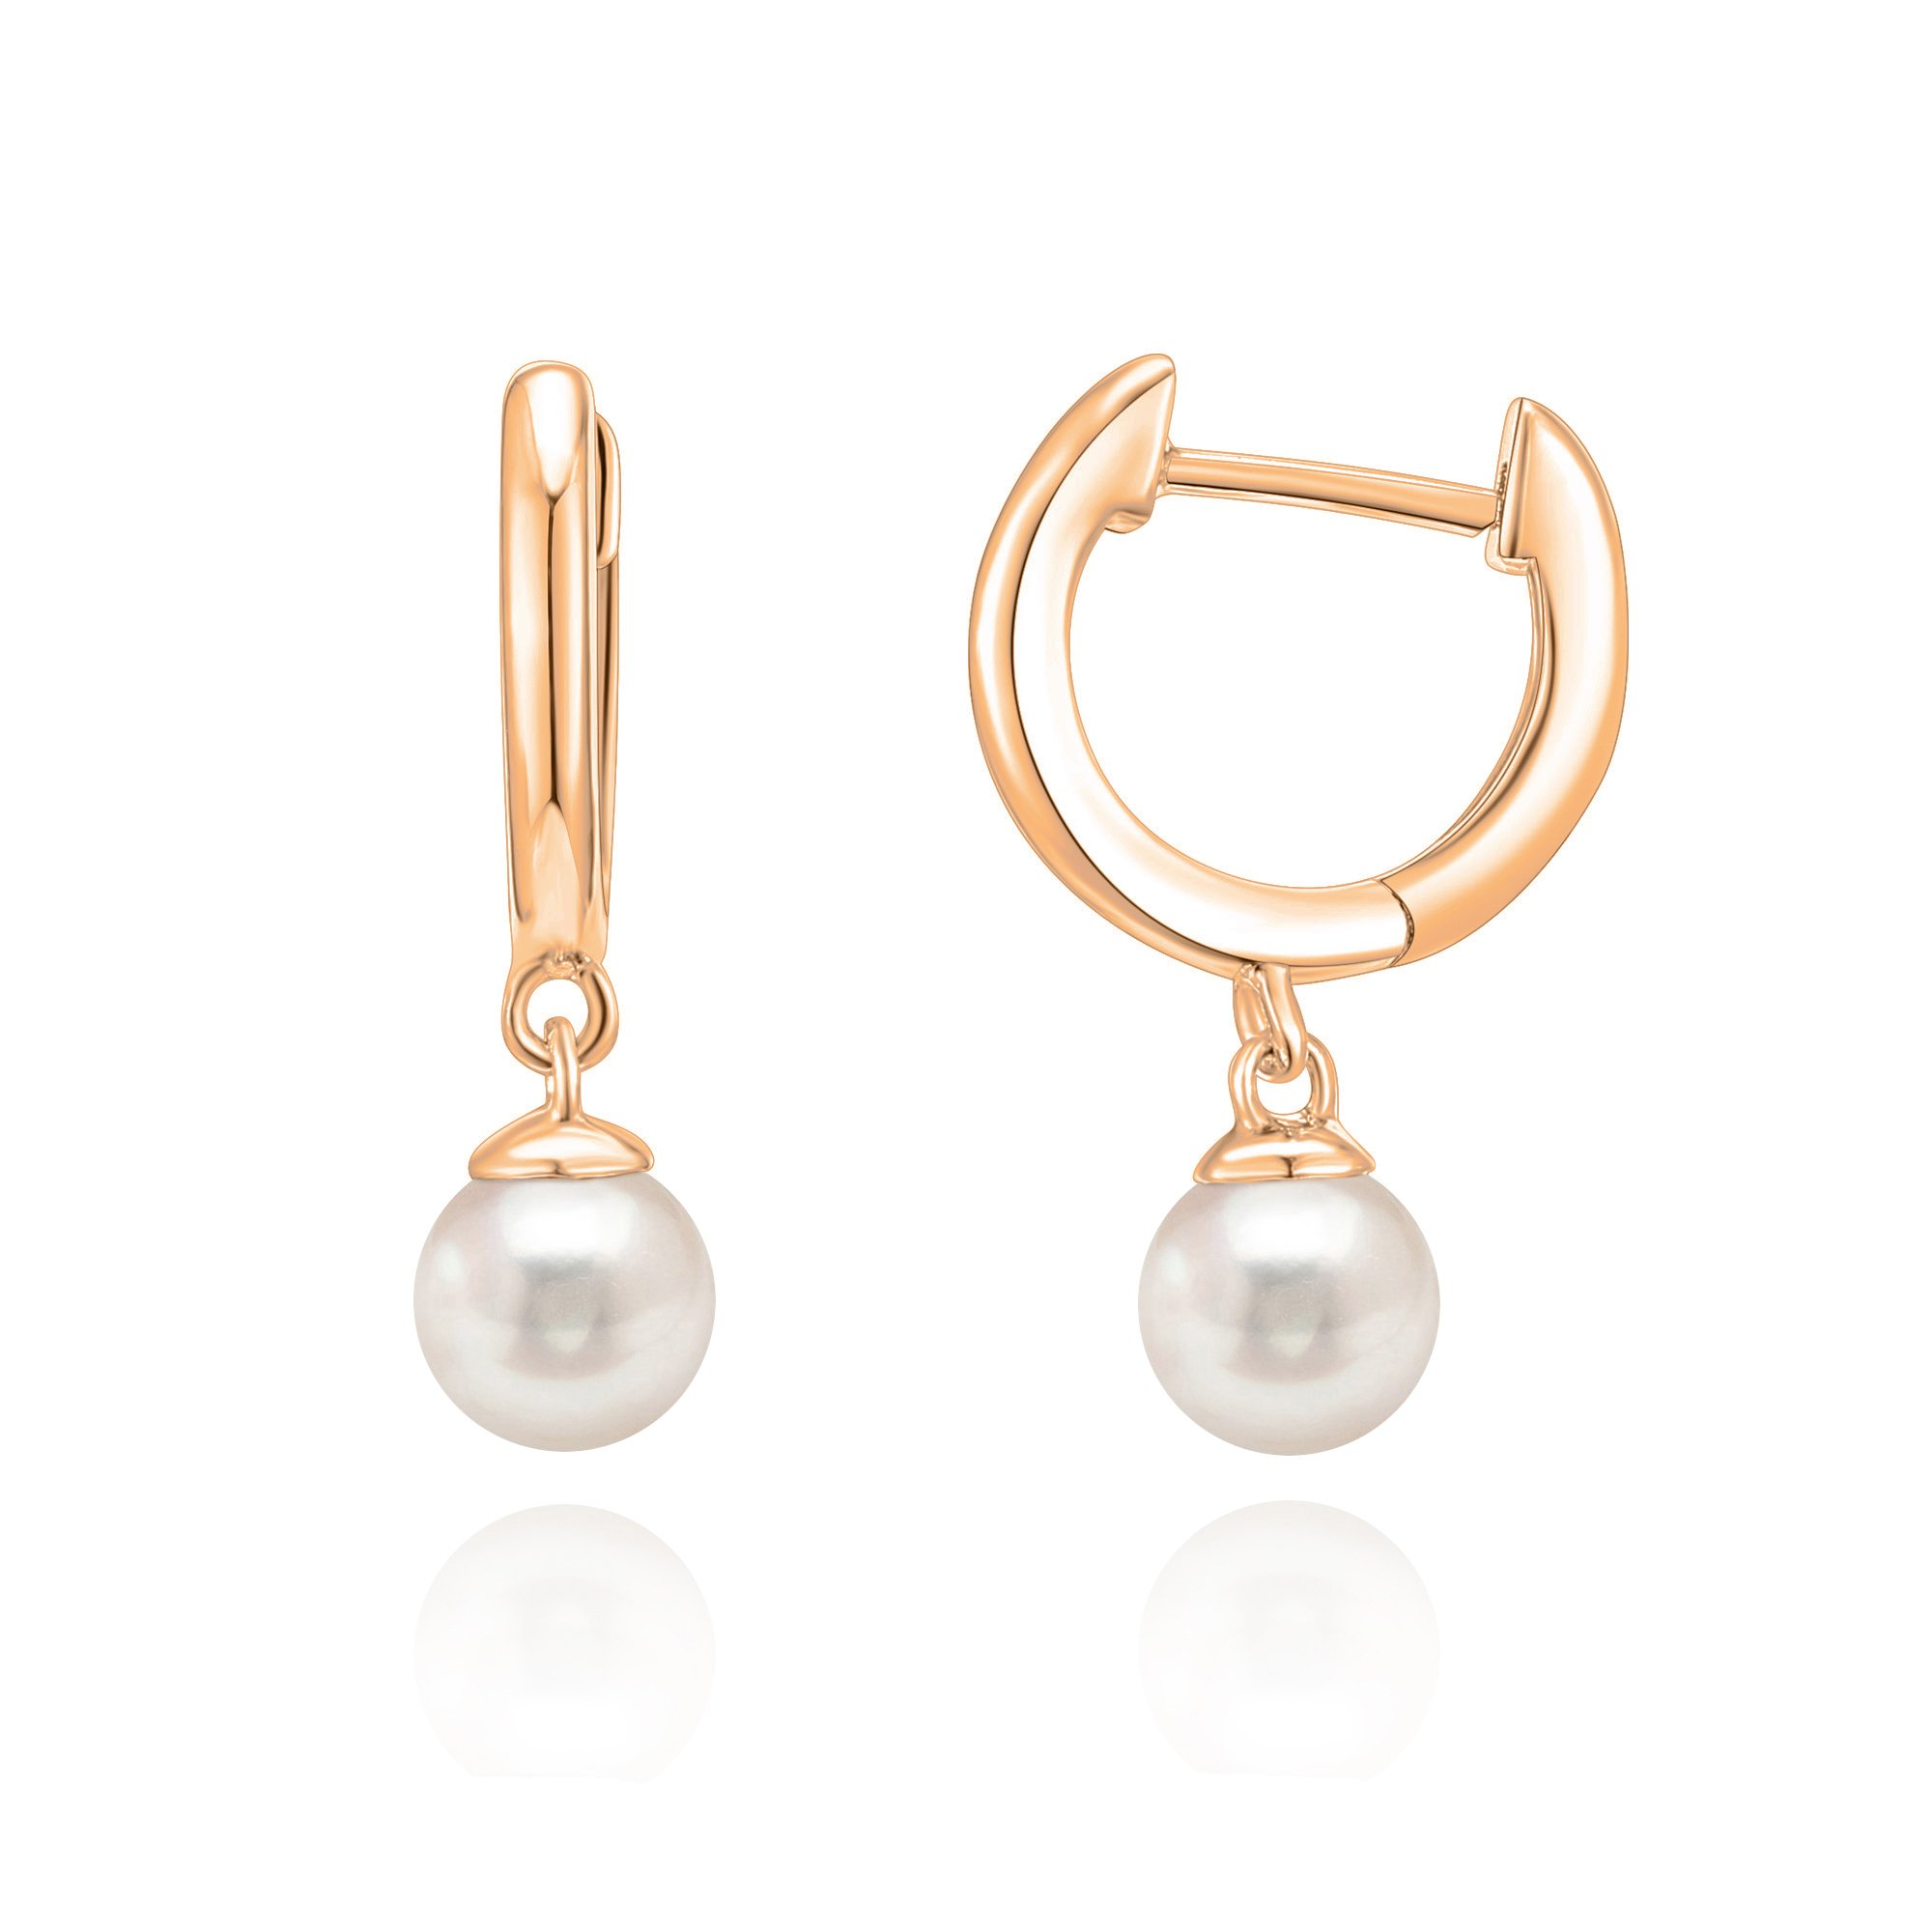 PAVOI 14K Rose Gold Plated Shell Pearl Leverback Huggie Drop Earring